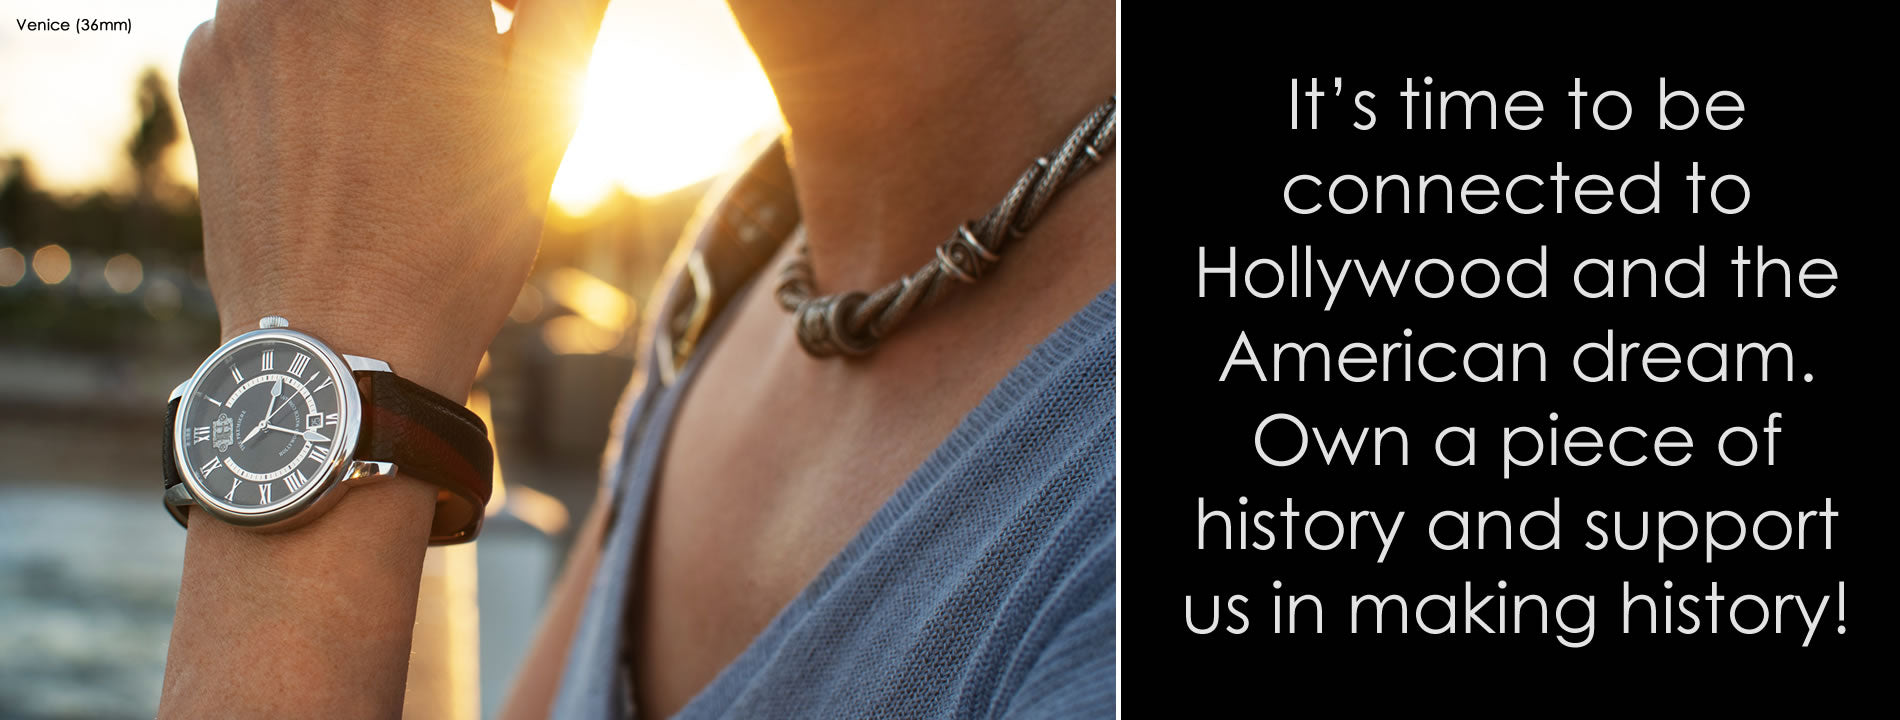 It's time to be connected to Hollywood and the American dream. Own a piece of history and support us in making history!